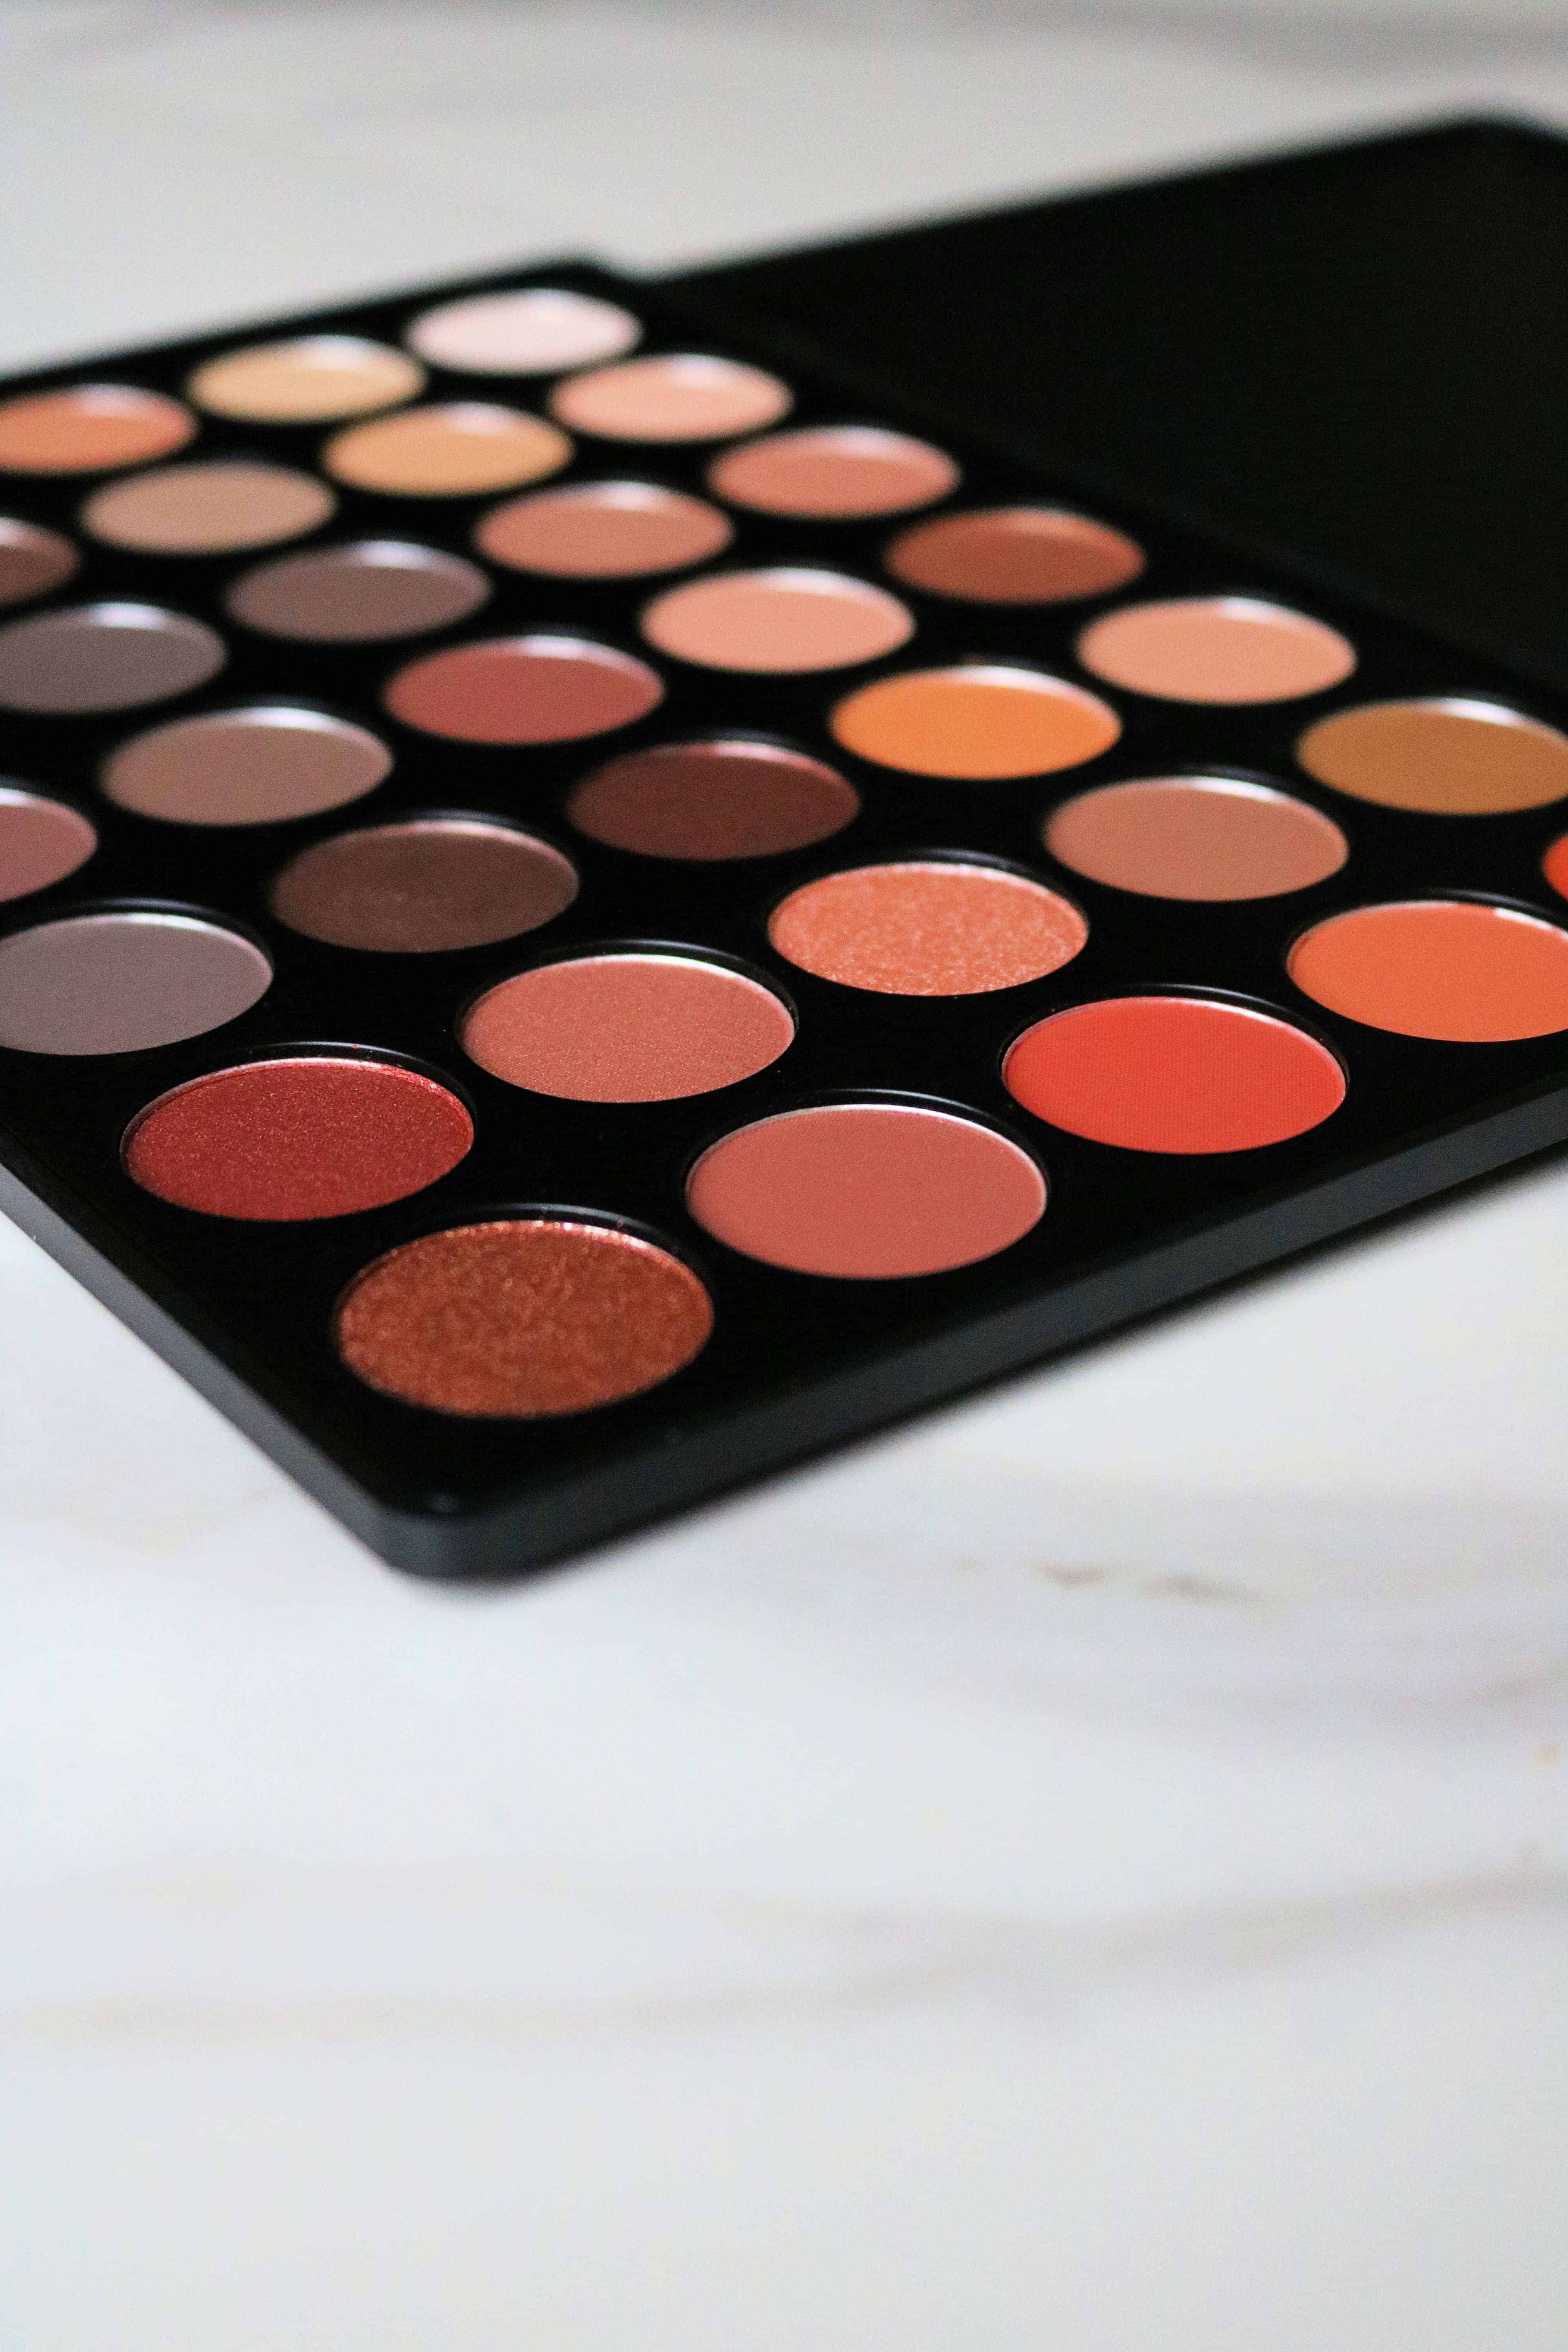 Morphe 350 Nature Glow Eyeshadow Palette Review Kindly